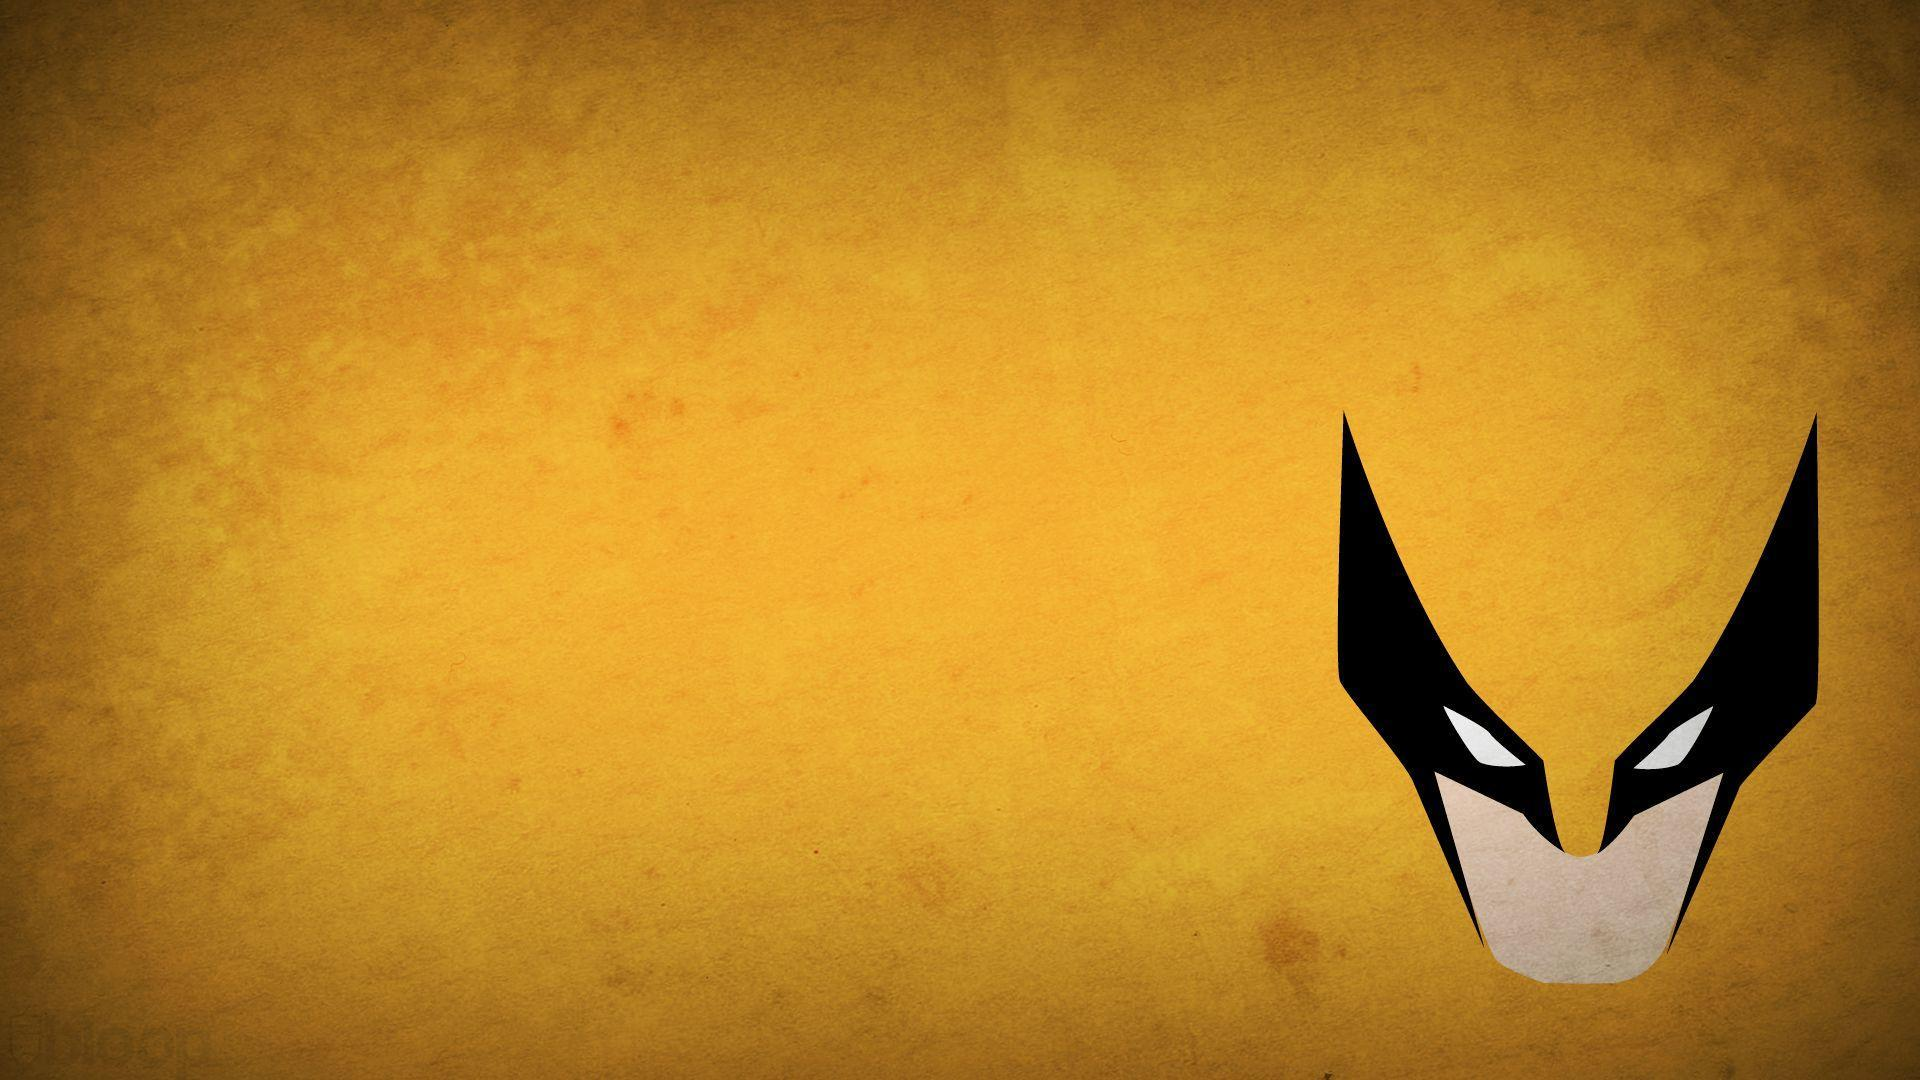 Simple Wolverine HD Wallpaper 1920x1080